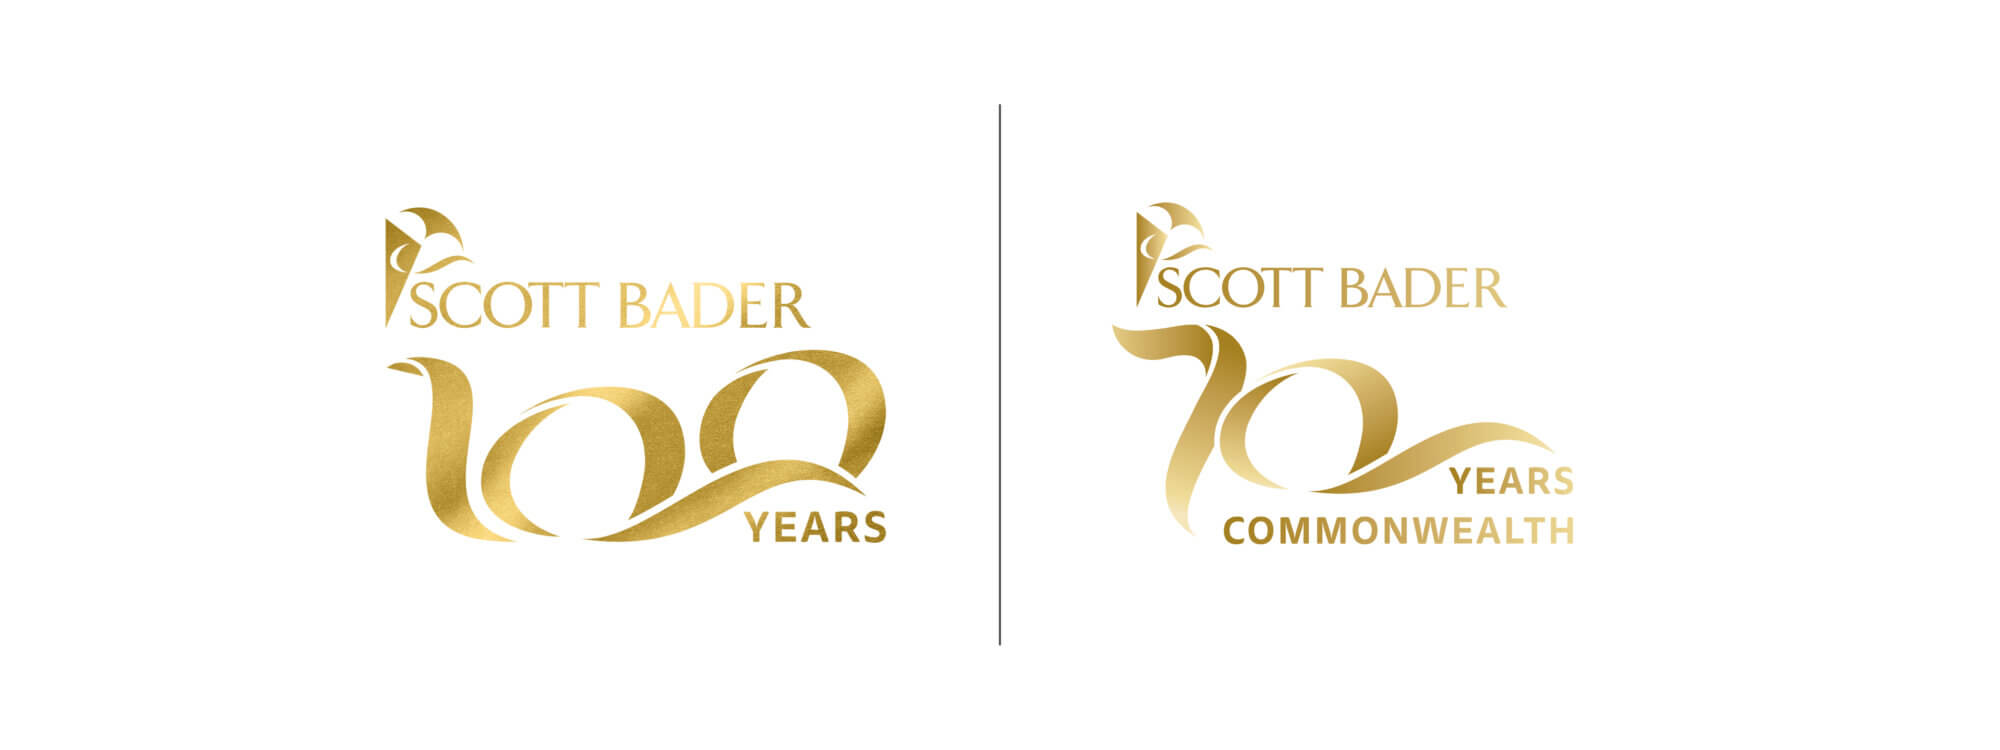 Scott Bader to celebrate its 100th birthday and 70 years of being employee owned